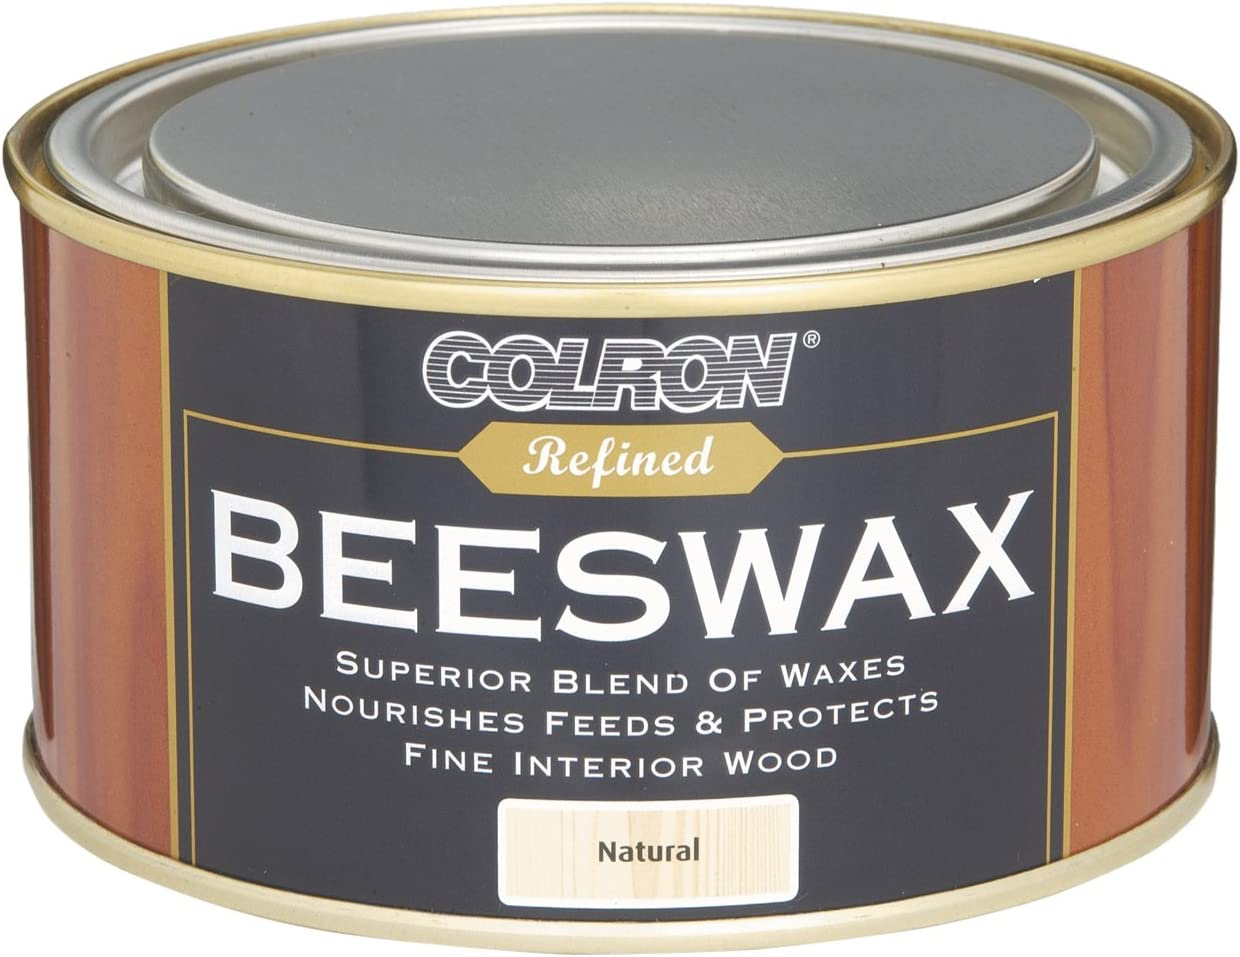 Ronseal CRPBWN4 400g Colron Refined Beeswax Paste - Natural